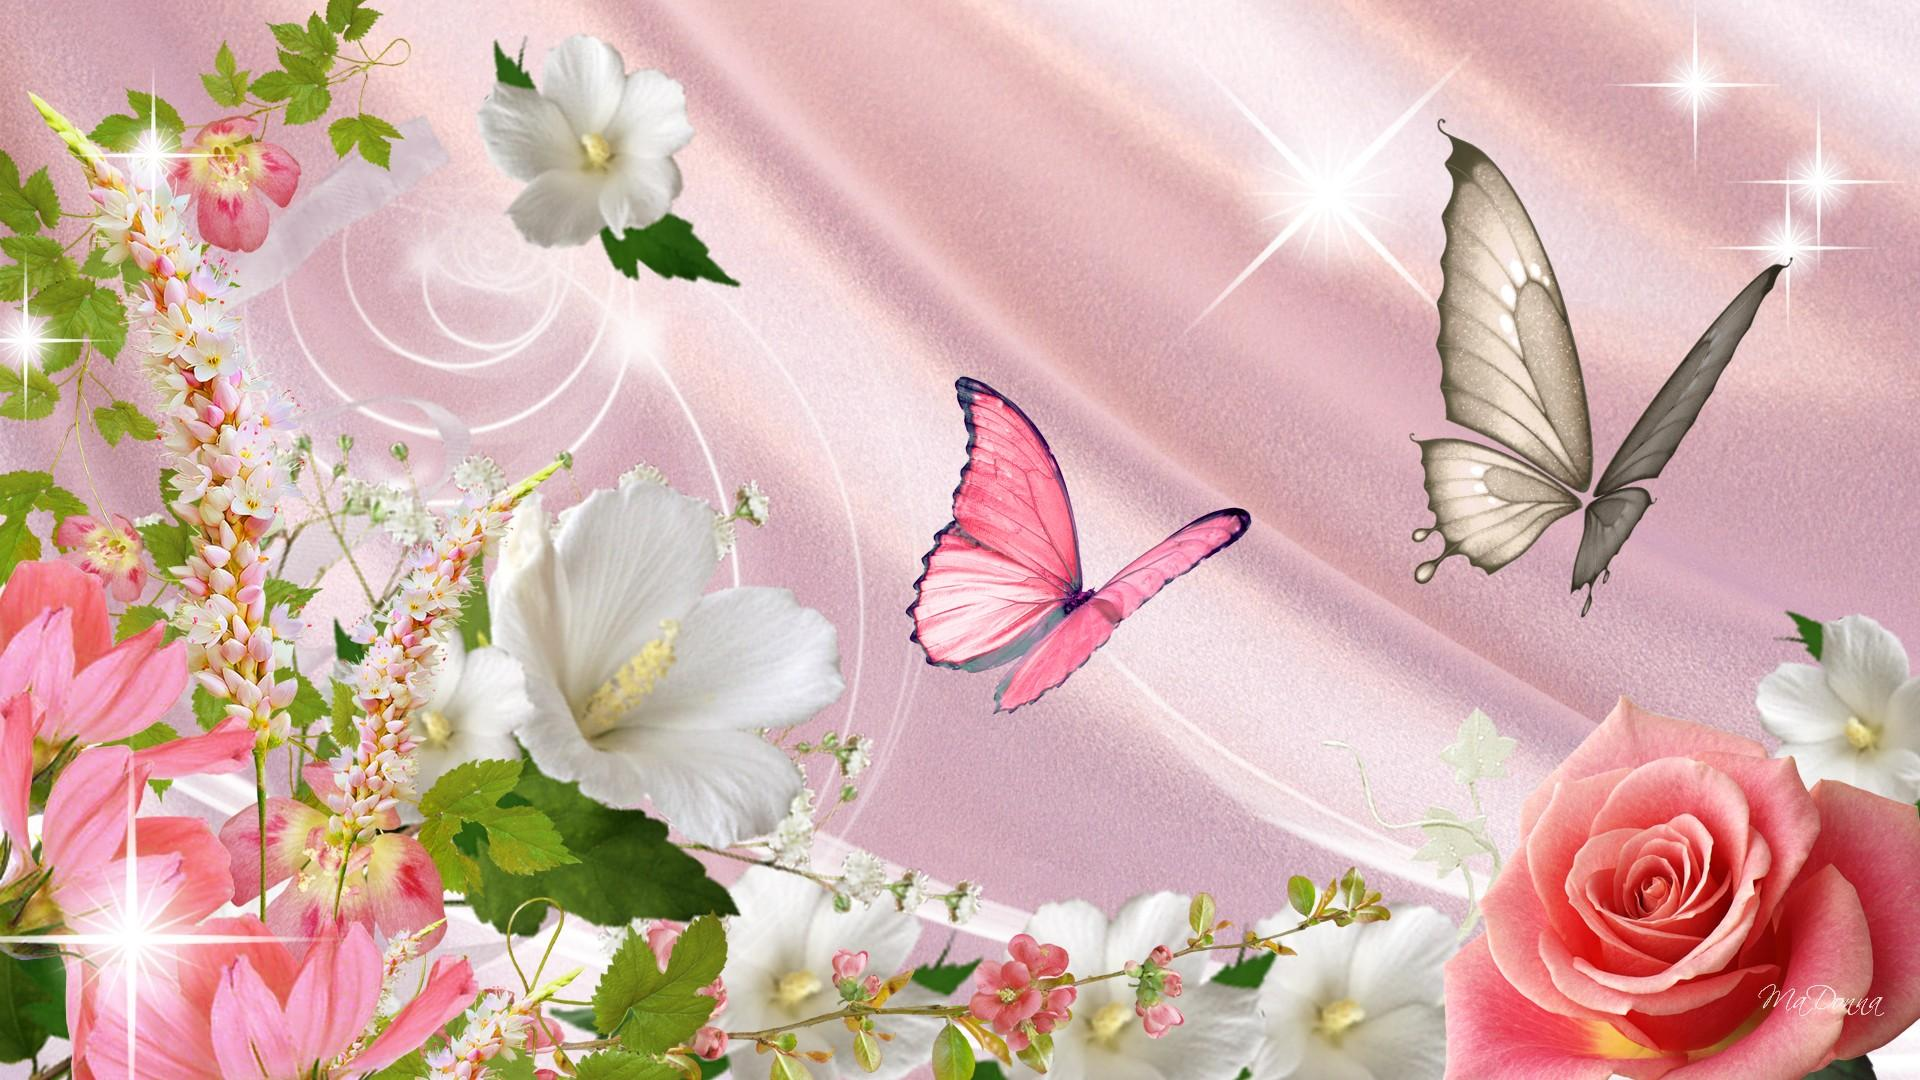 FunMozar – Spring Flowers And Butterflies Wallpapers